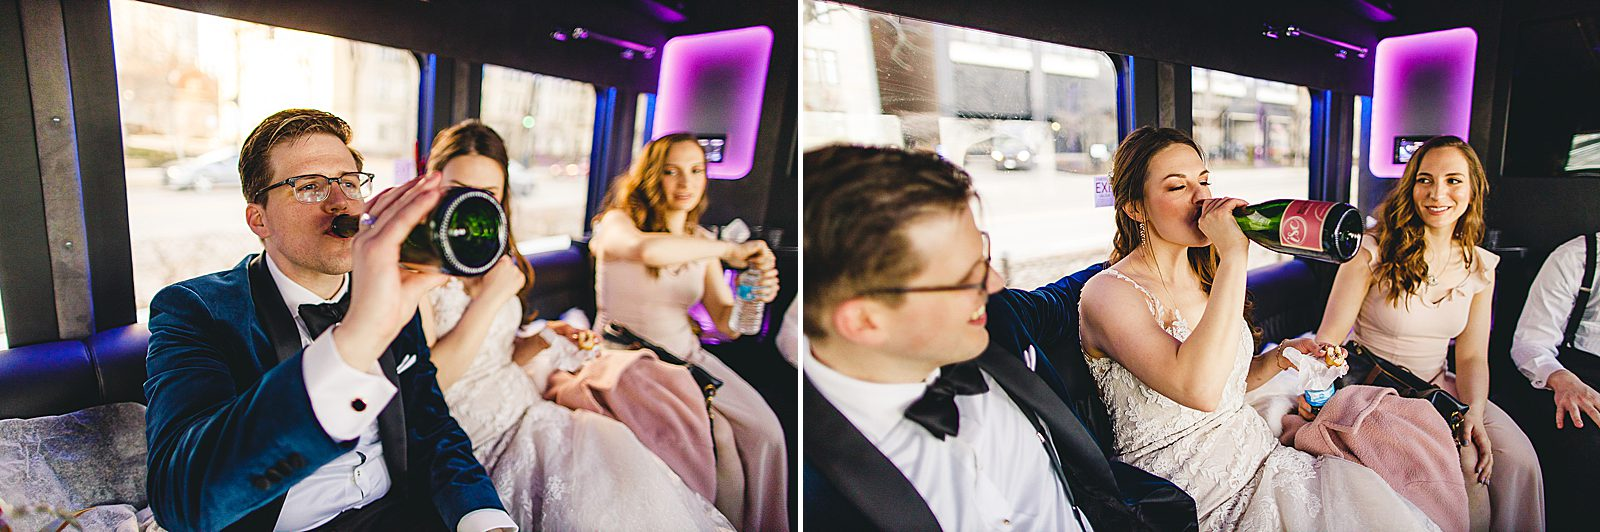 29 chicago wedding photograhy - The Wedding of Samantha + Kyle in Chicago